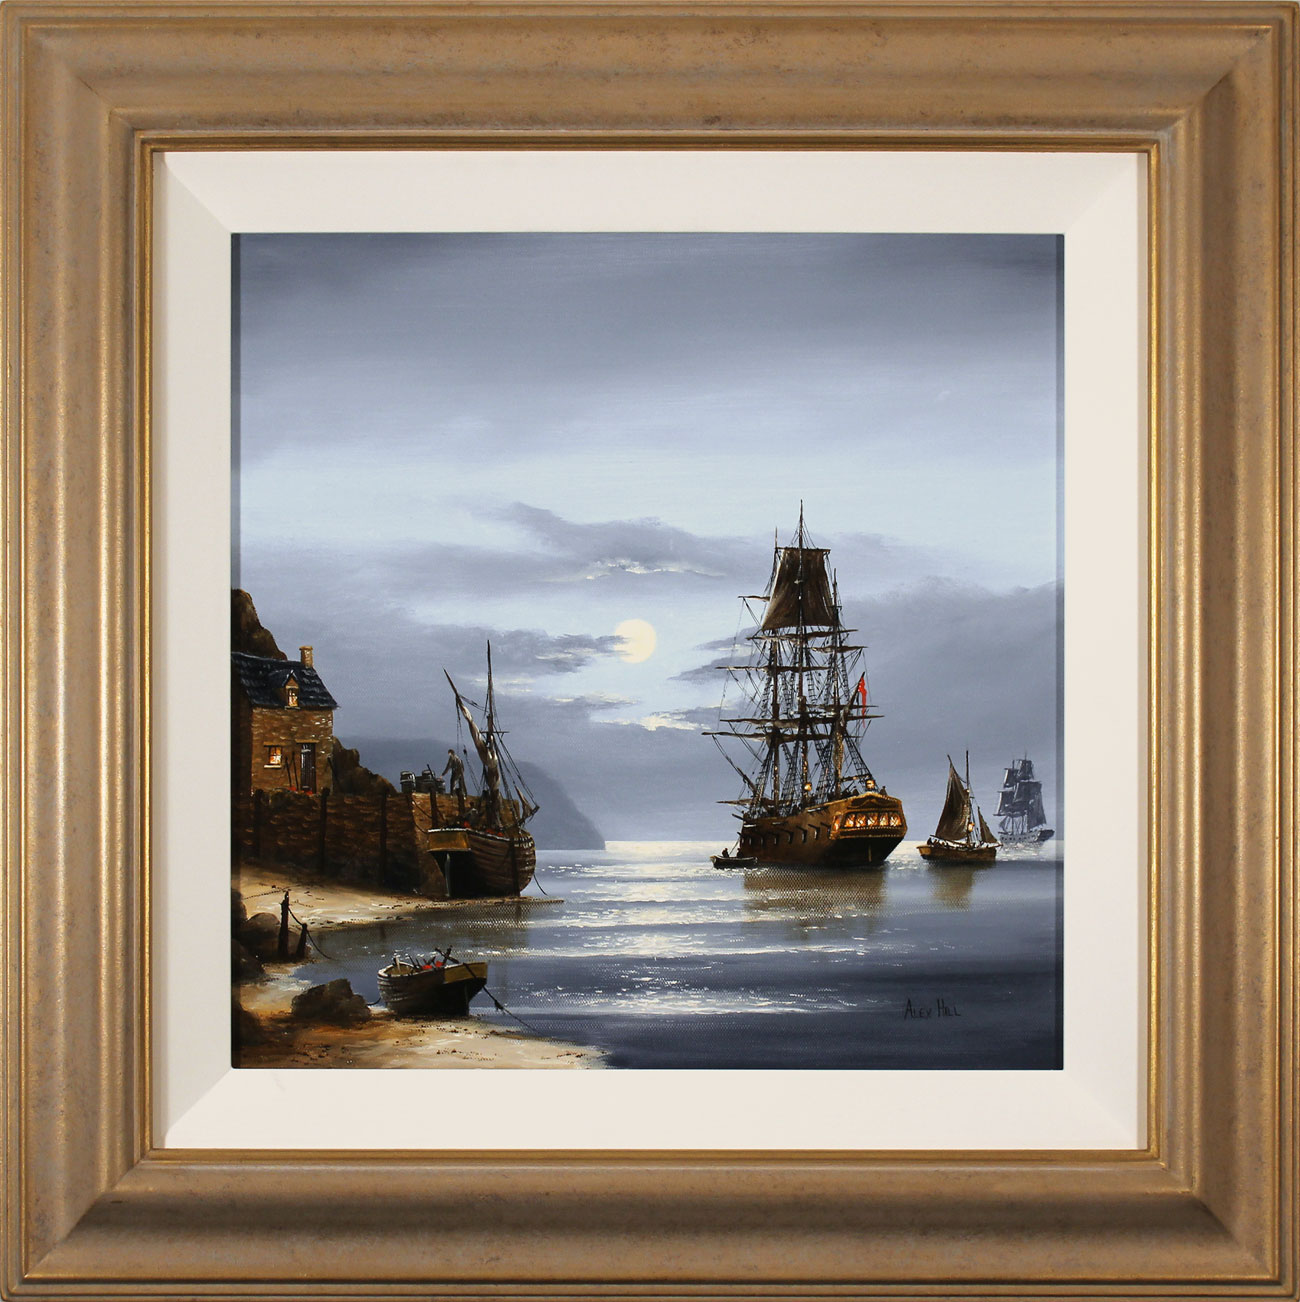 Alex Hill, Original oil painting on canvas, Moonlight Mooring, click to enlarge